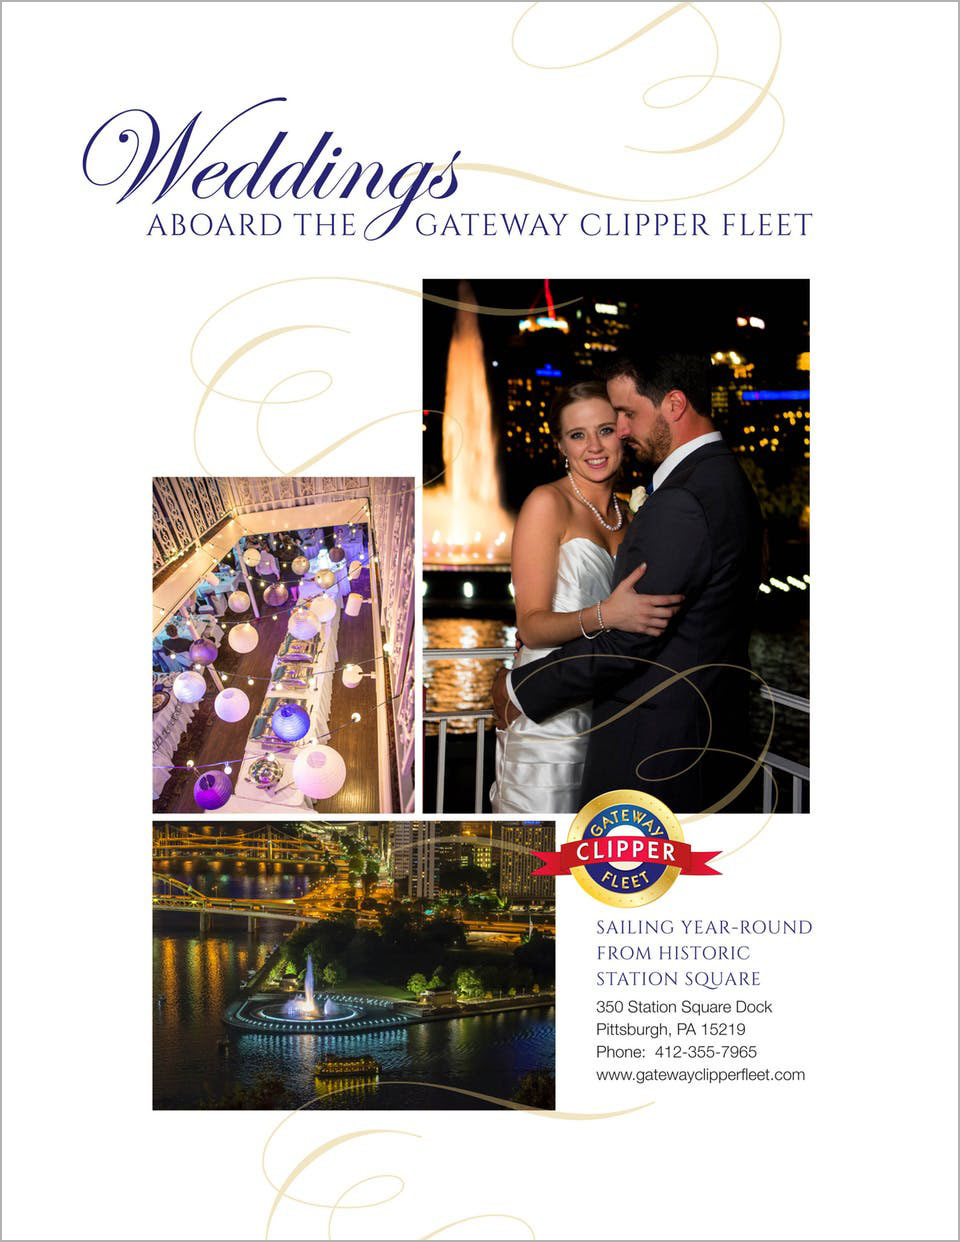 GATEWAY-CLIPPER-FLEET-WEDDINGS-button.jpg